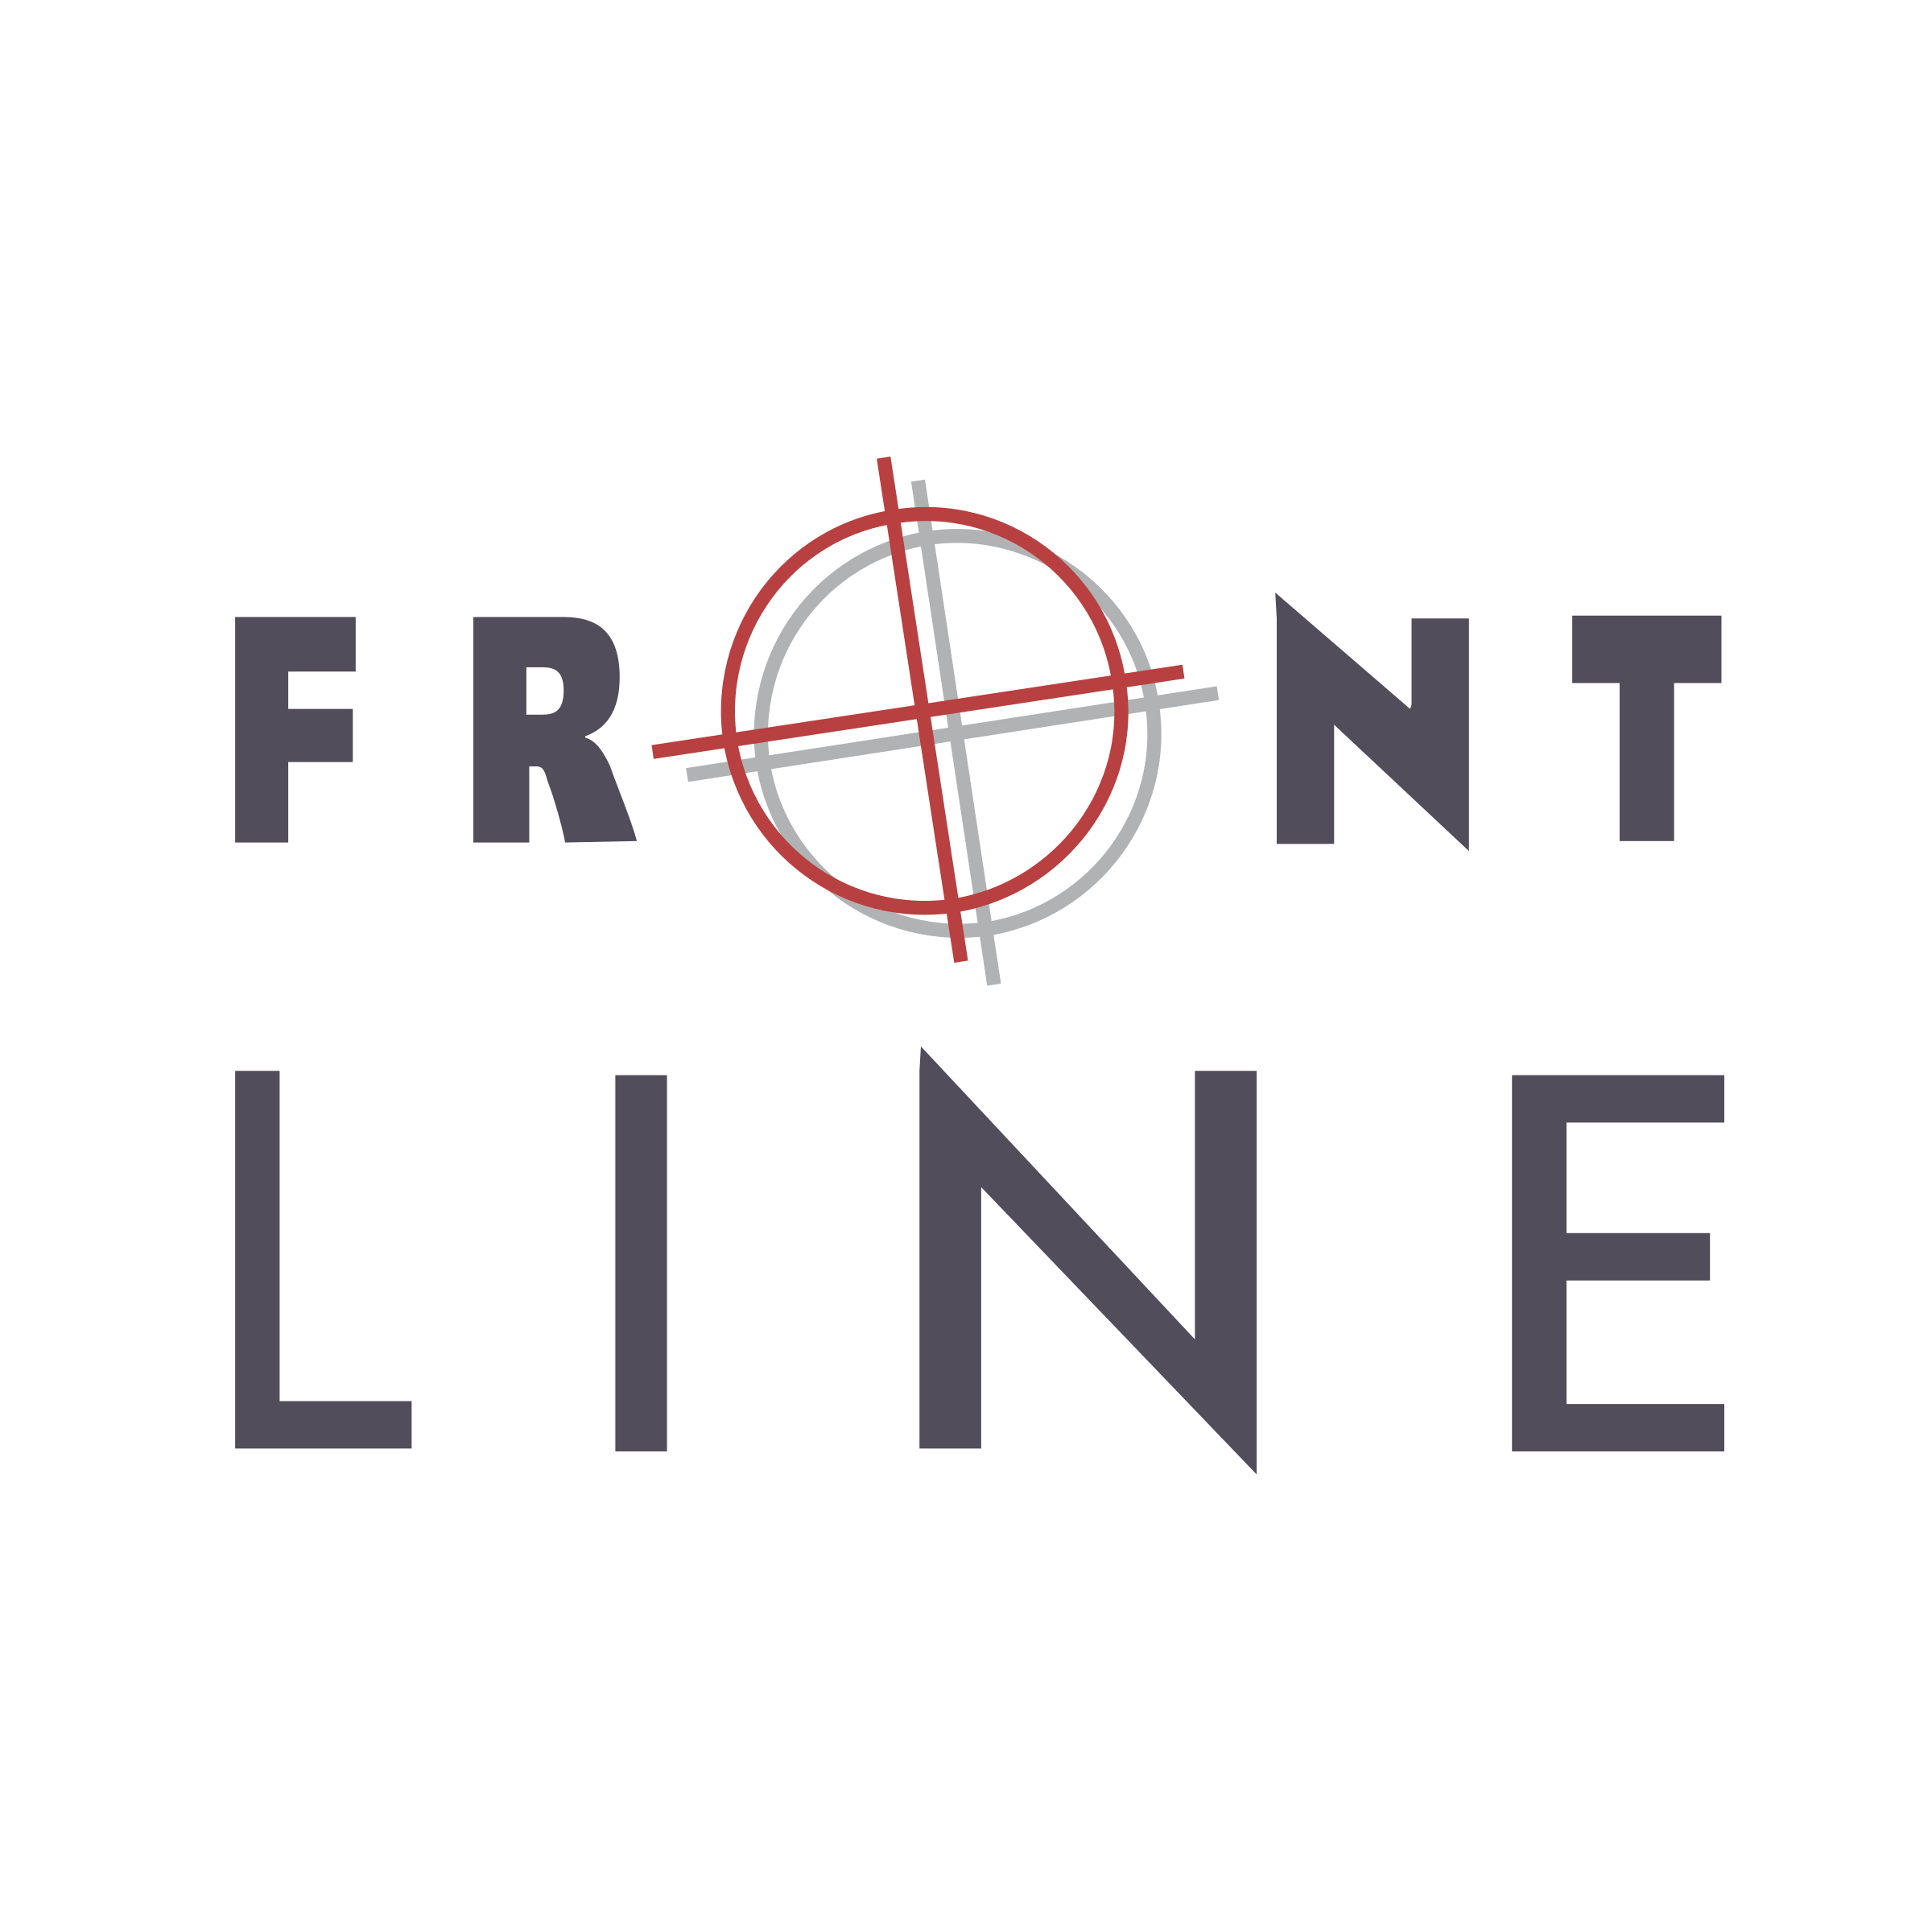 FrontLine Logo PNG Transparent & SVG Vector.